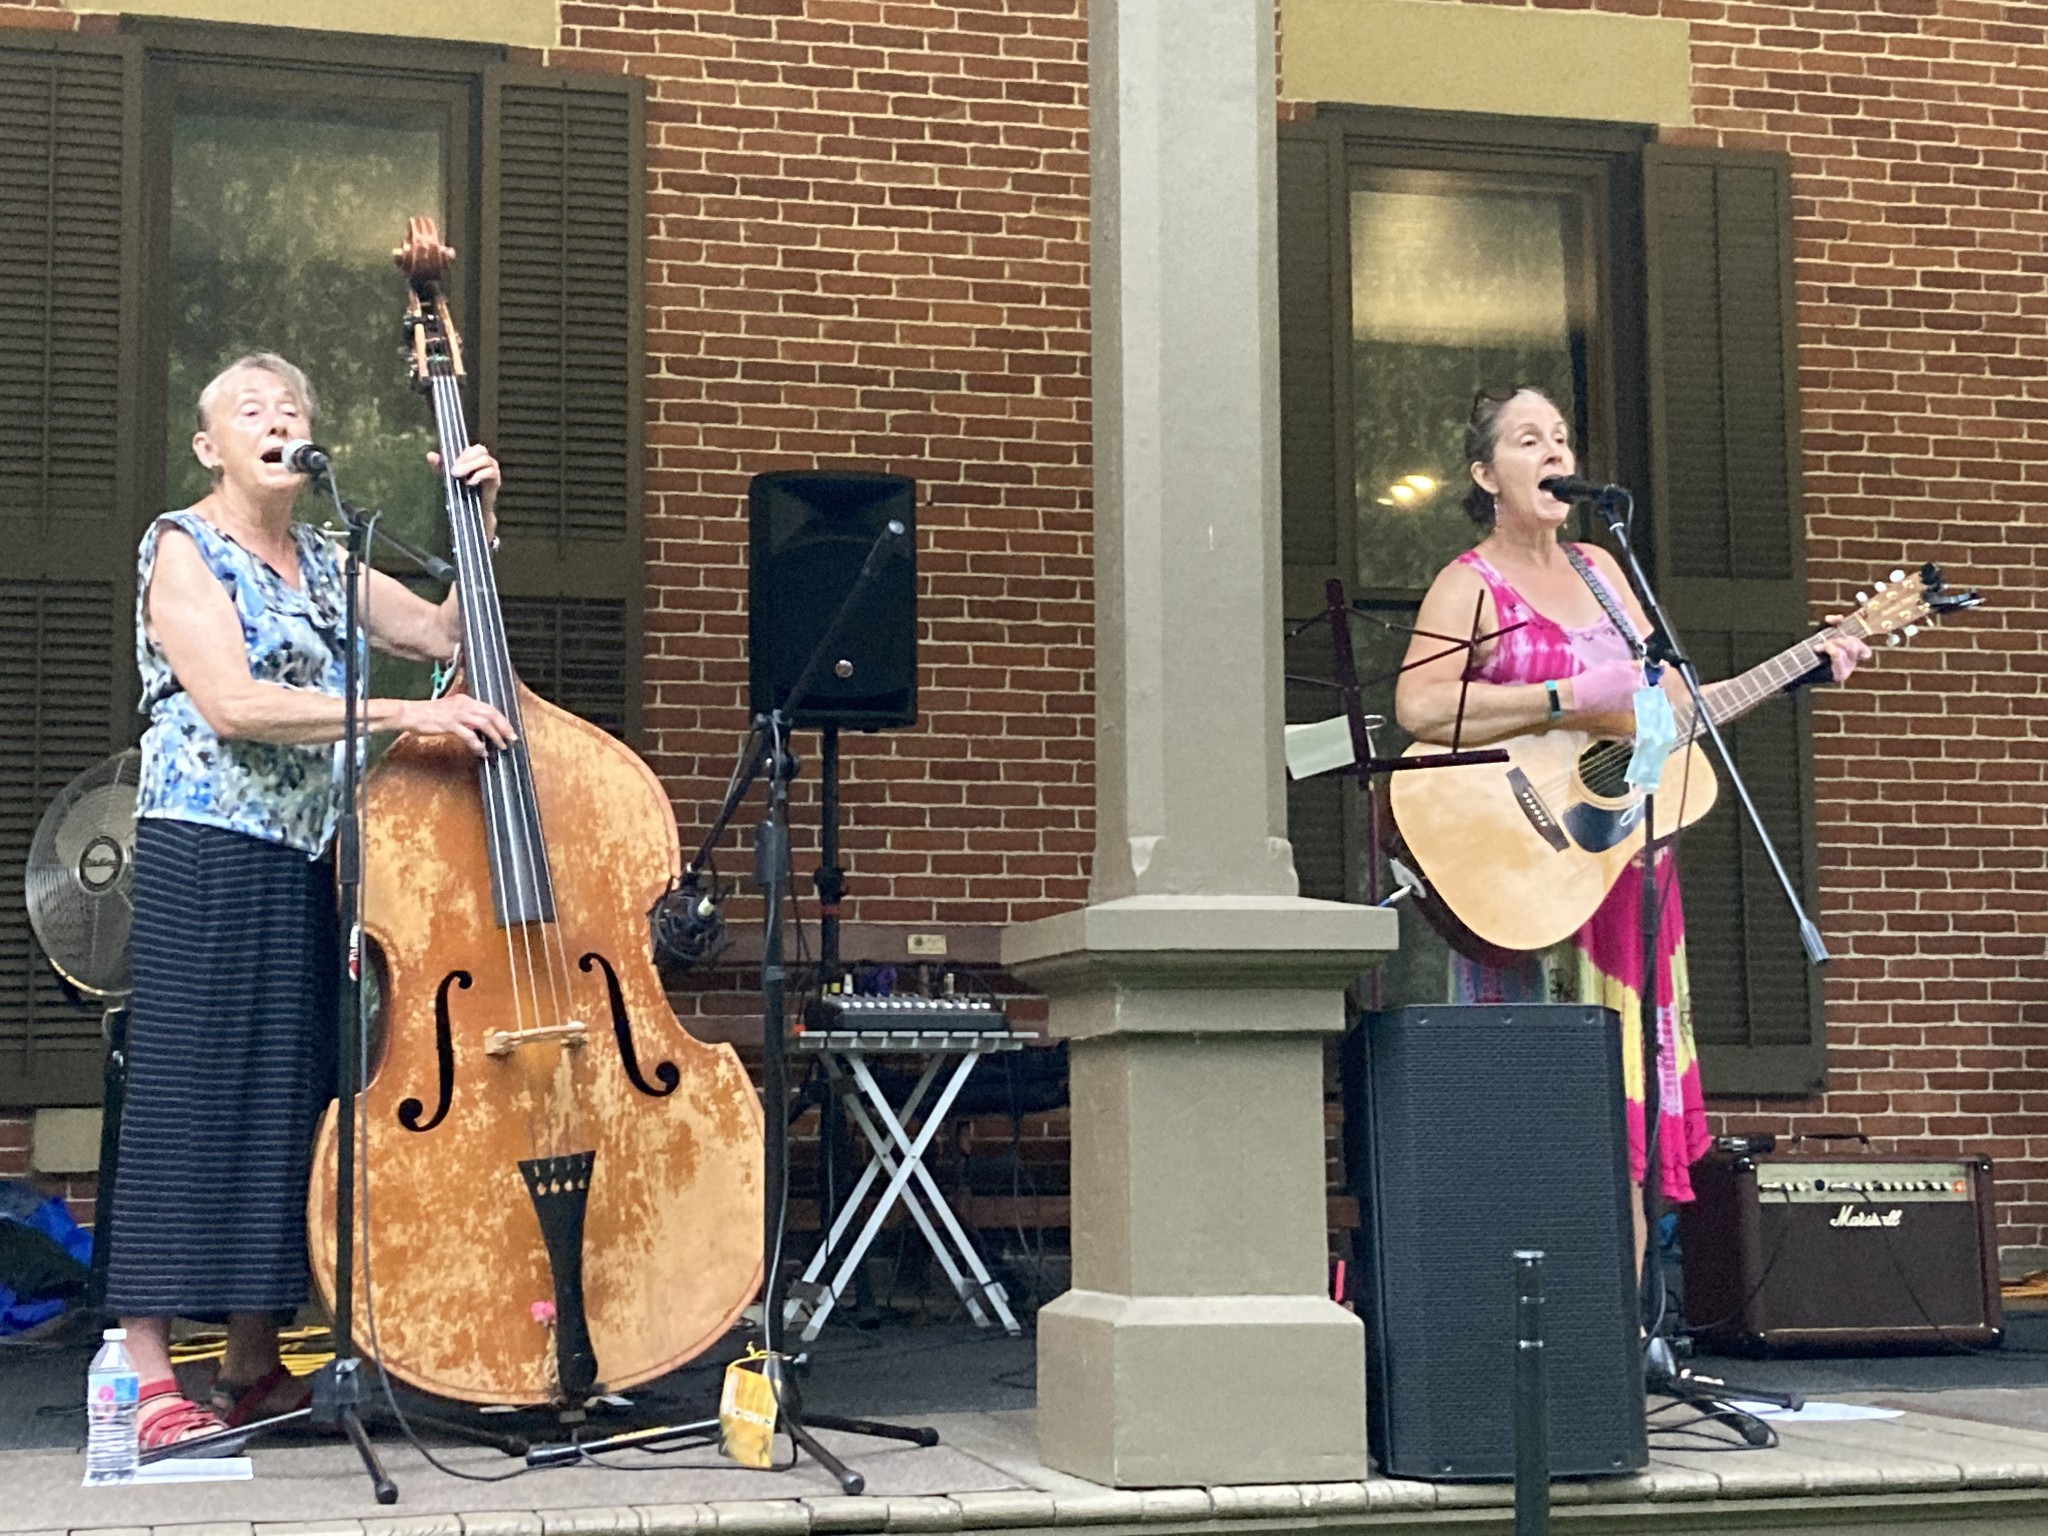 The Cottonwood Jam String Band performs at a past Verandah Concert at the Hayes Presidential Library & Museums. The band will play at the last Verandah Concert of the season on Wednesday, Sept. 15. (Submitted photo)